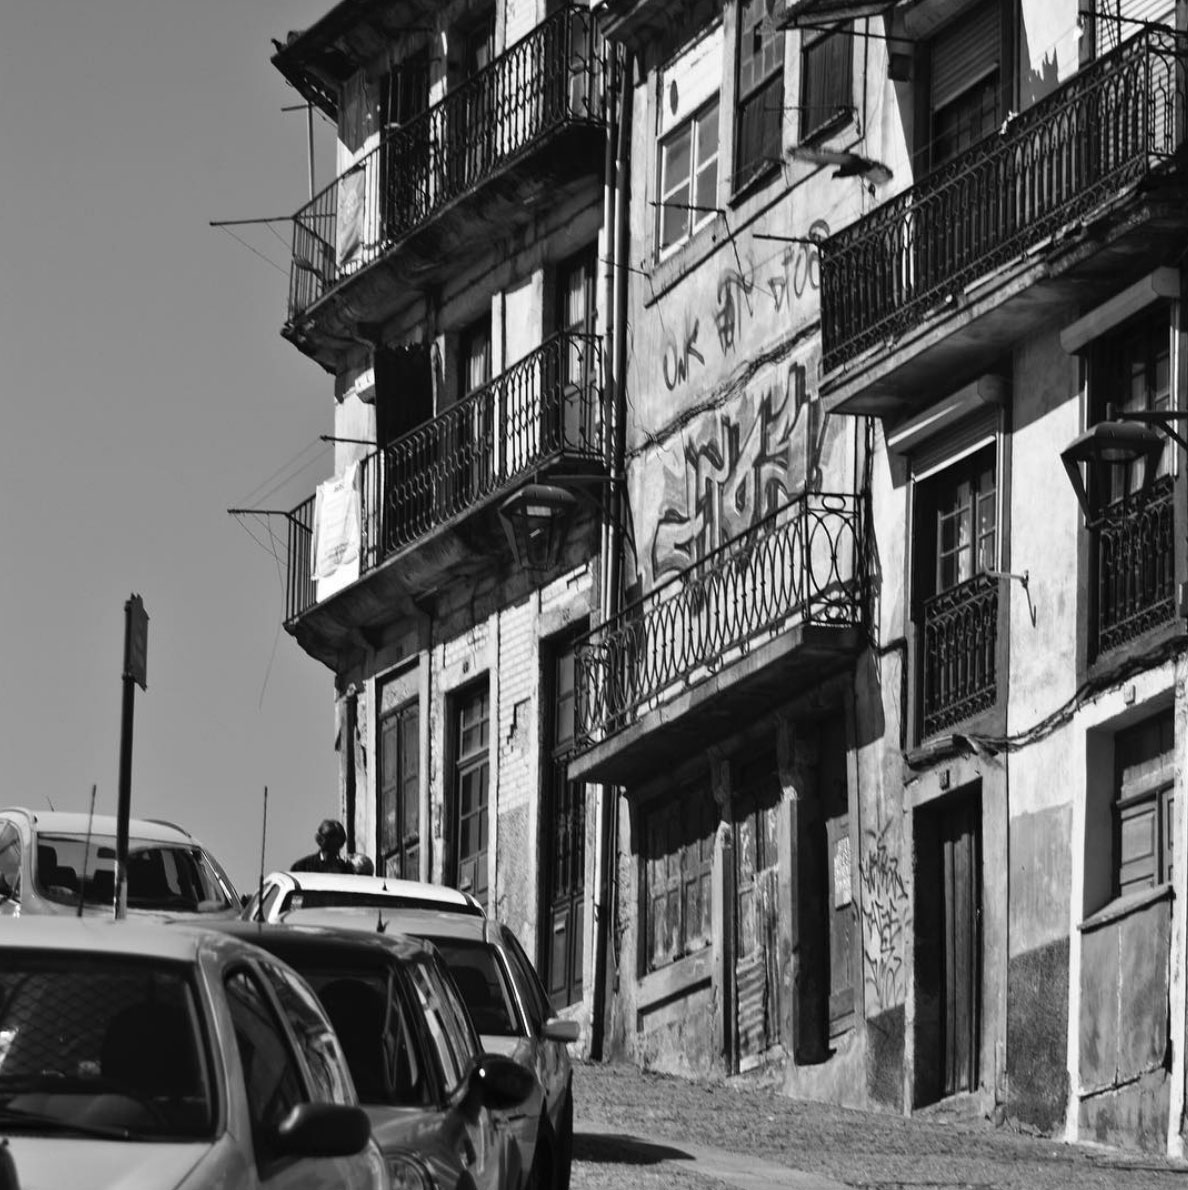 Picture of the details on the streets of Porto, Portugal